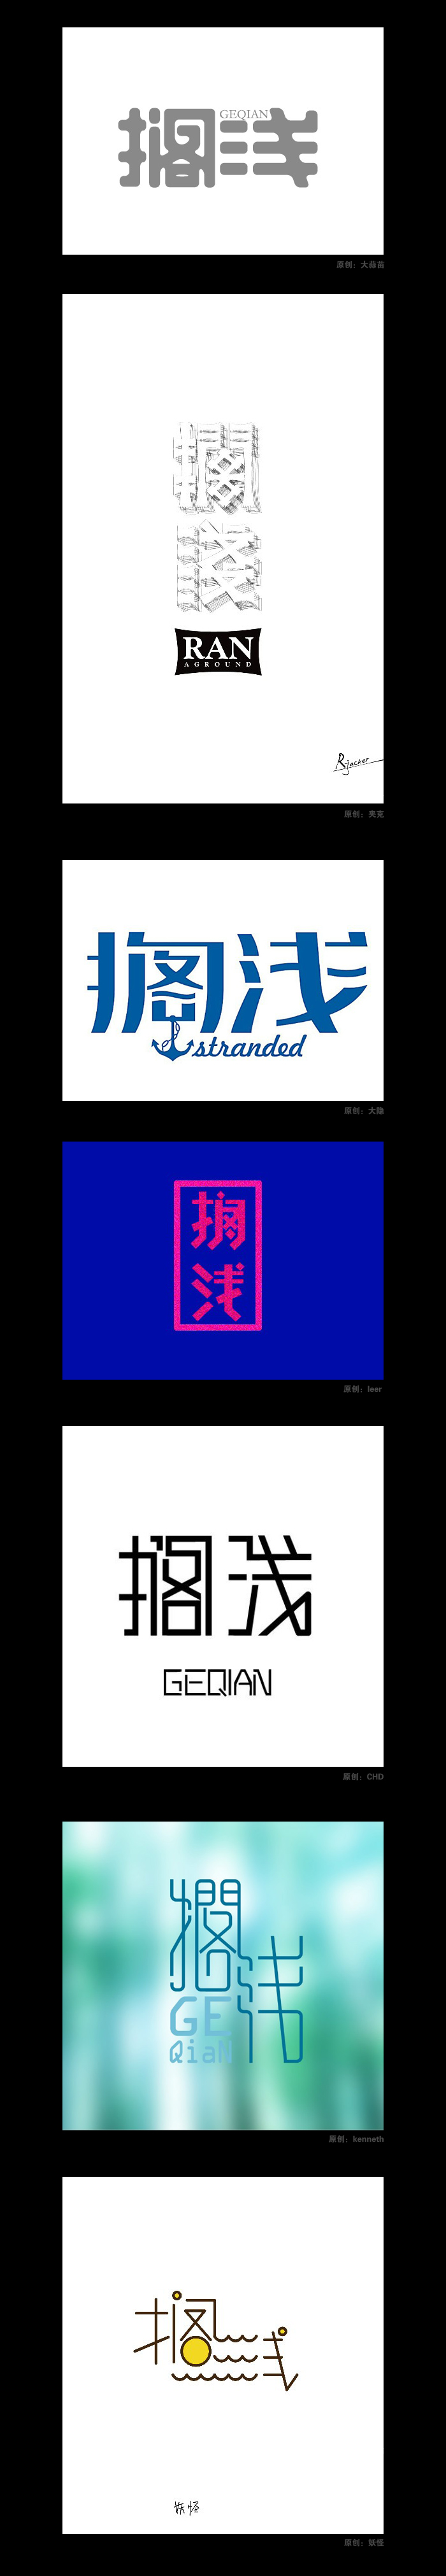 chinesefontdesign.com 2016 07 17 20 26 02 100+ Examples Of Creative Chinese Font Style Ddesign Ideas You Should See